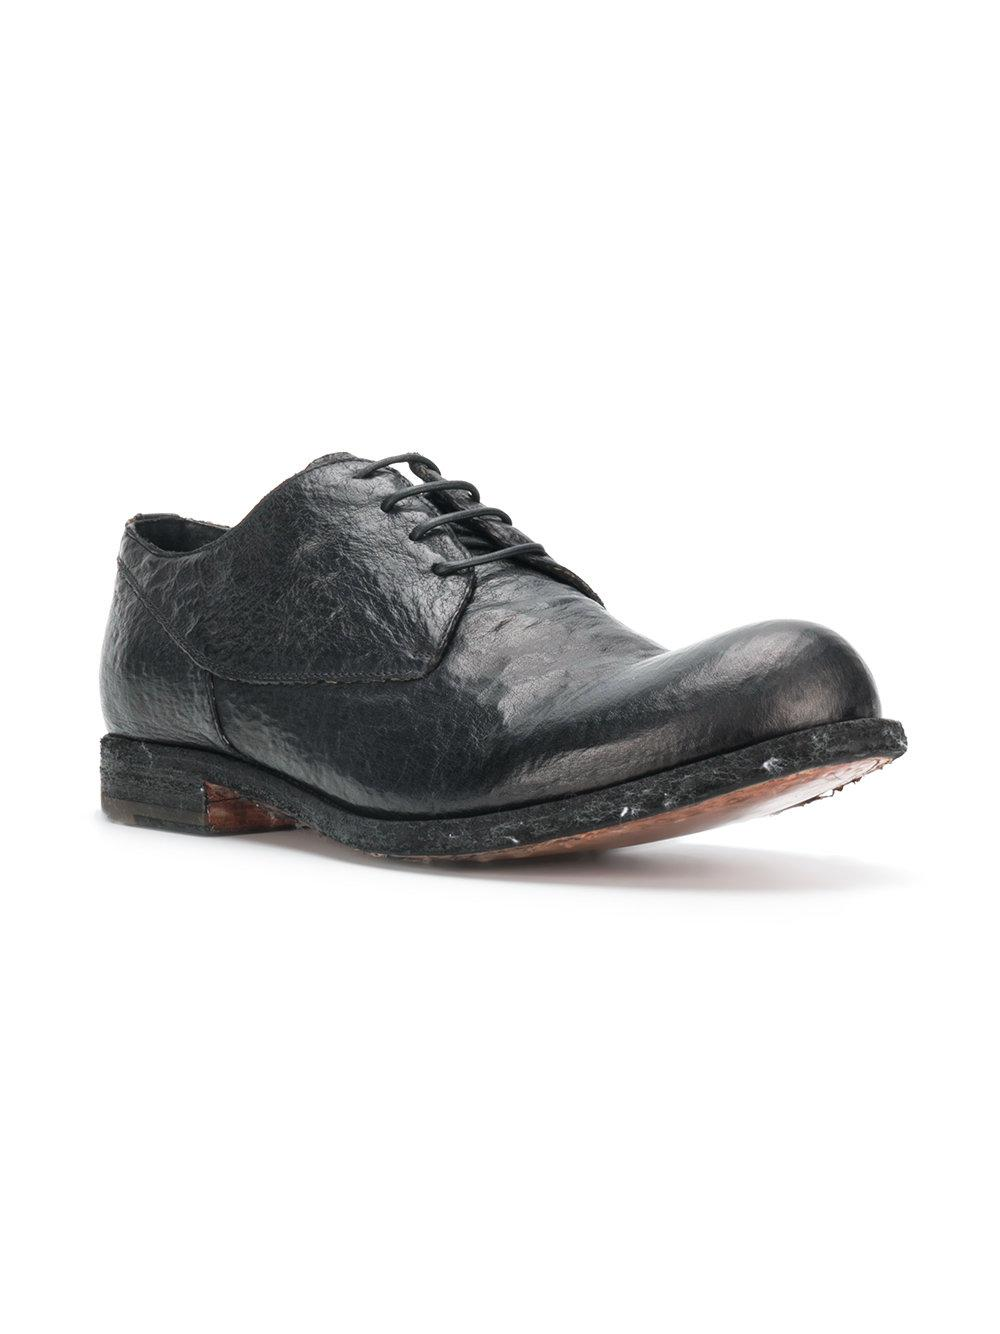 Officine Creative Leather Bubble Shoes in Black for Men